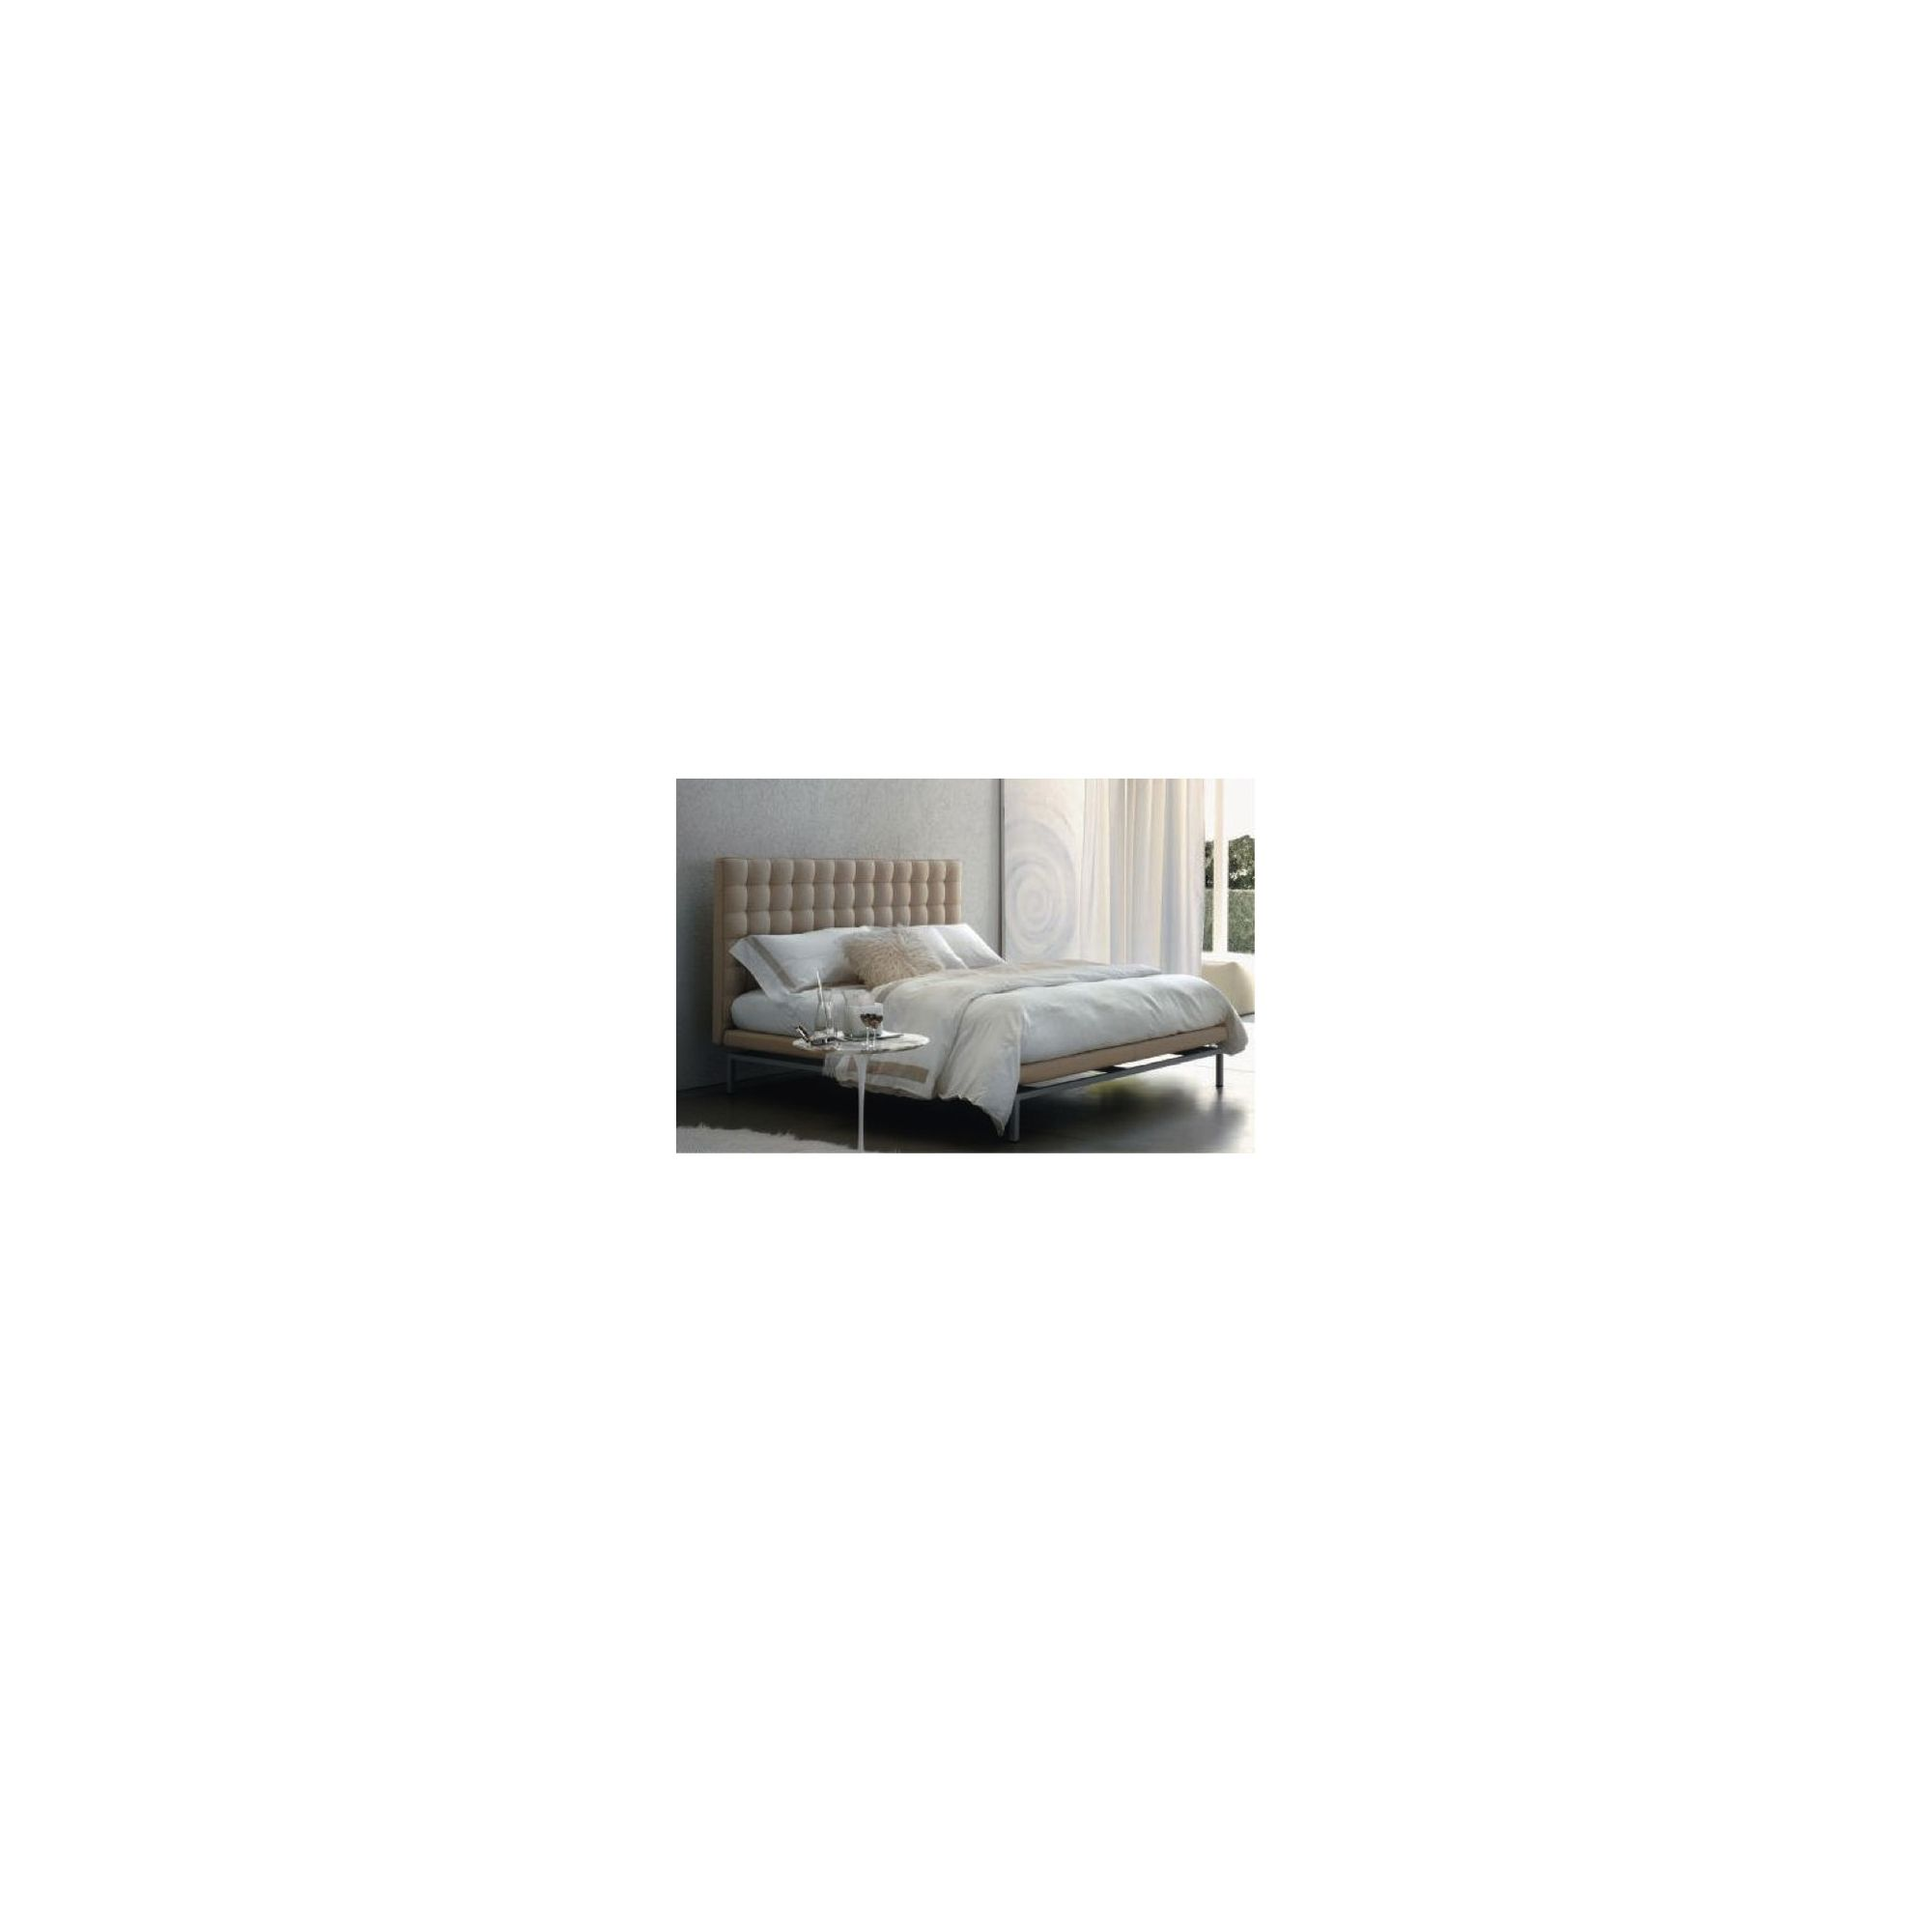 CC Furnishing 126'' Super King-size Design Bed - White Cashmere at Tescos Direct